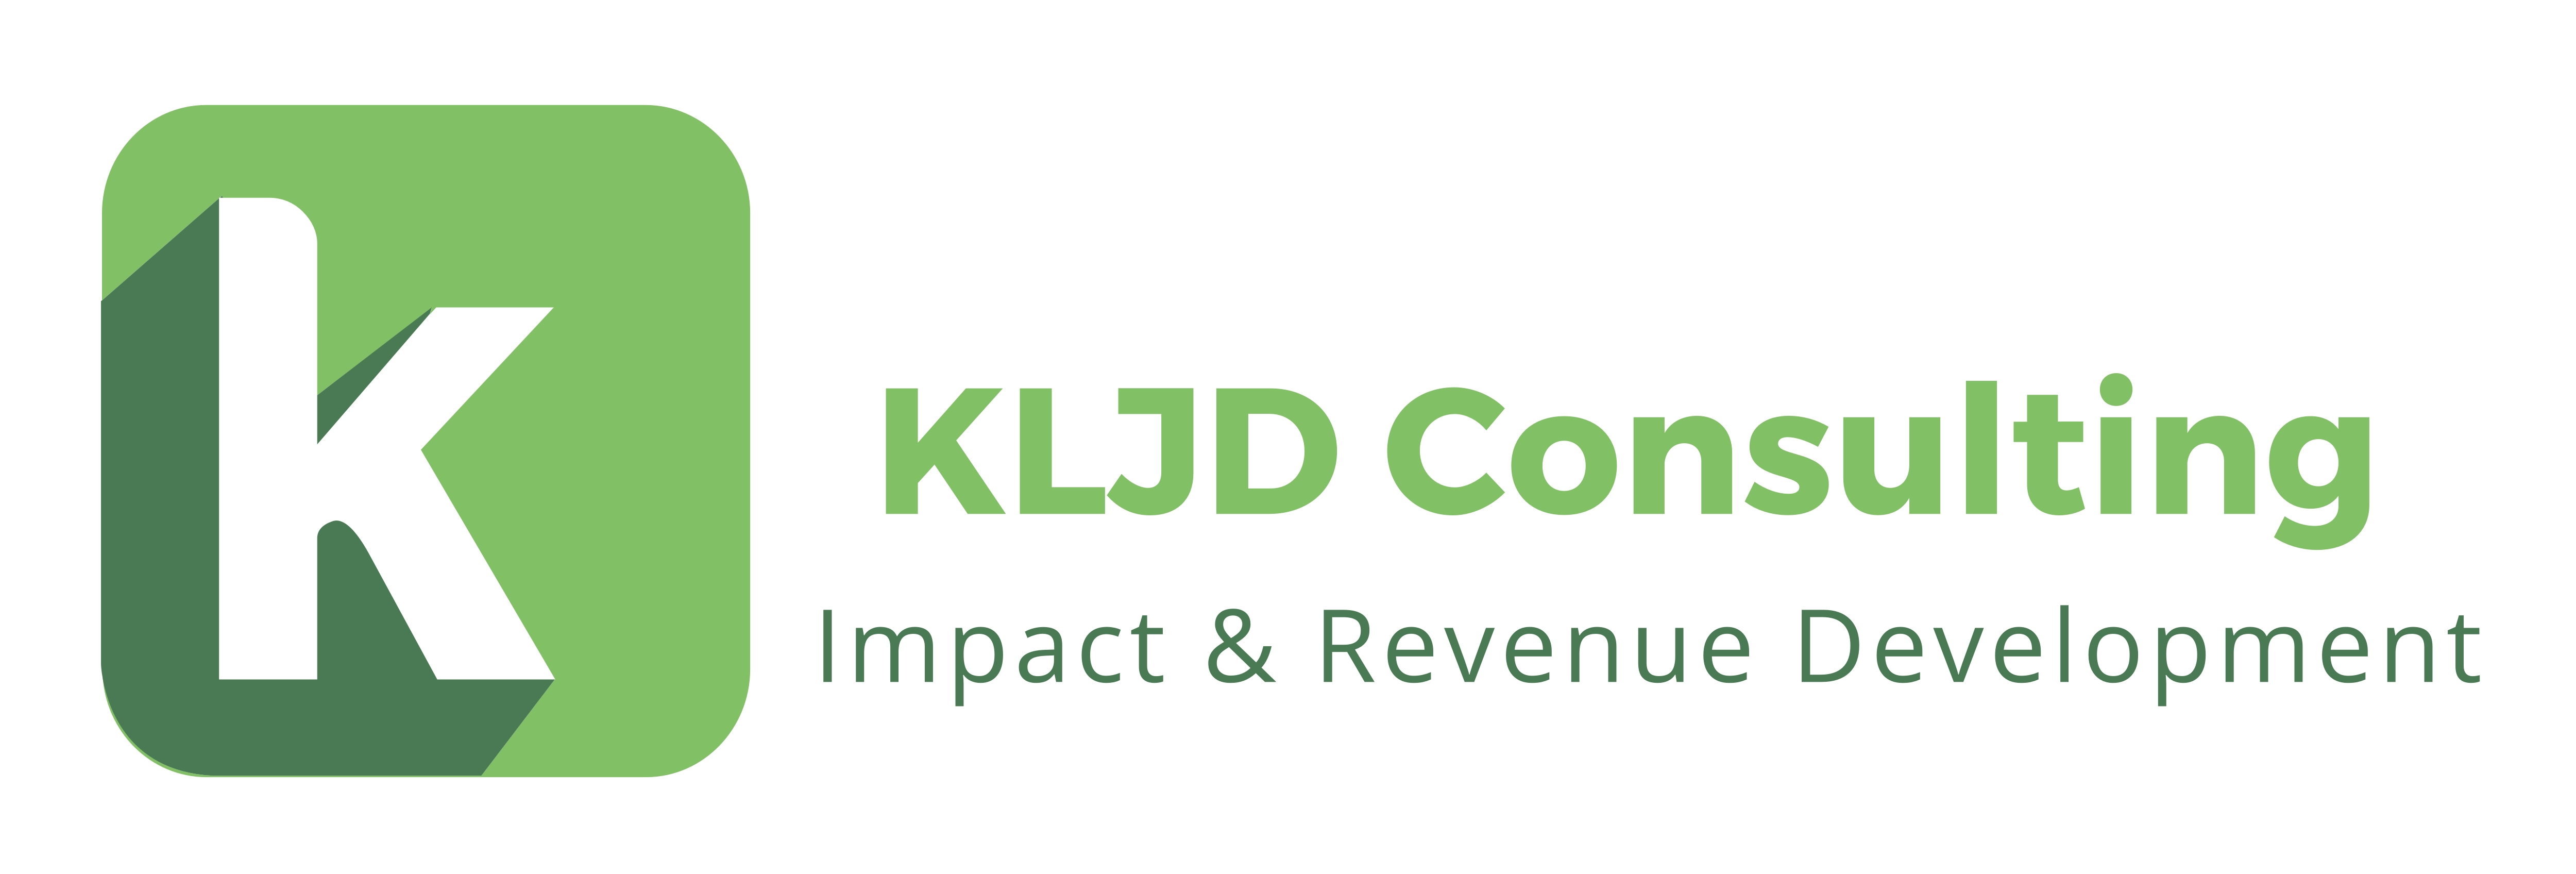 KLJD Consulting